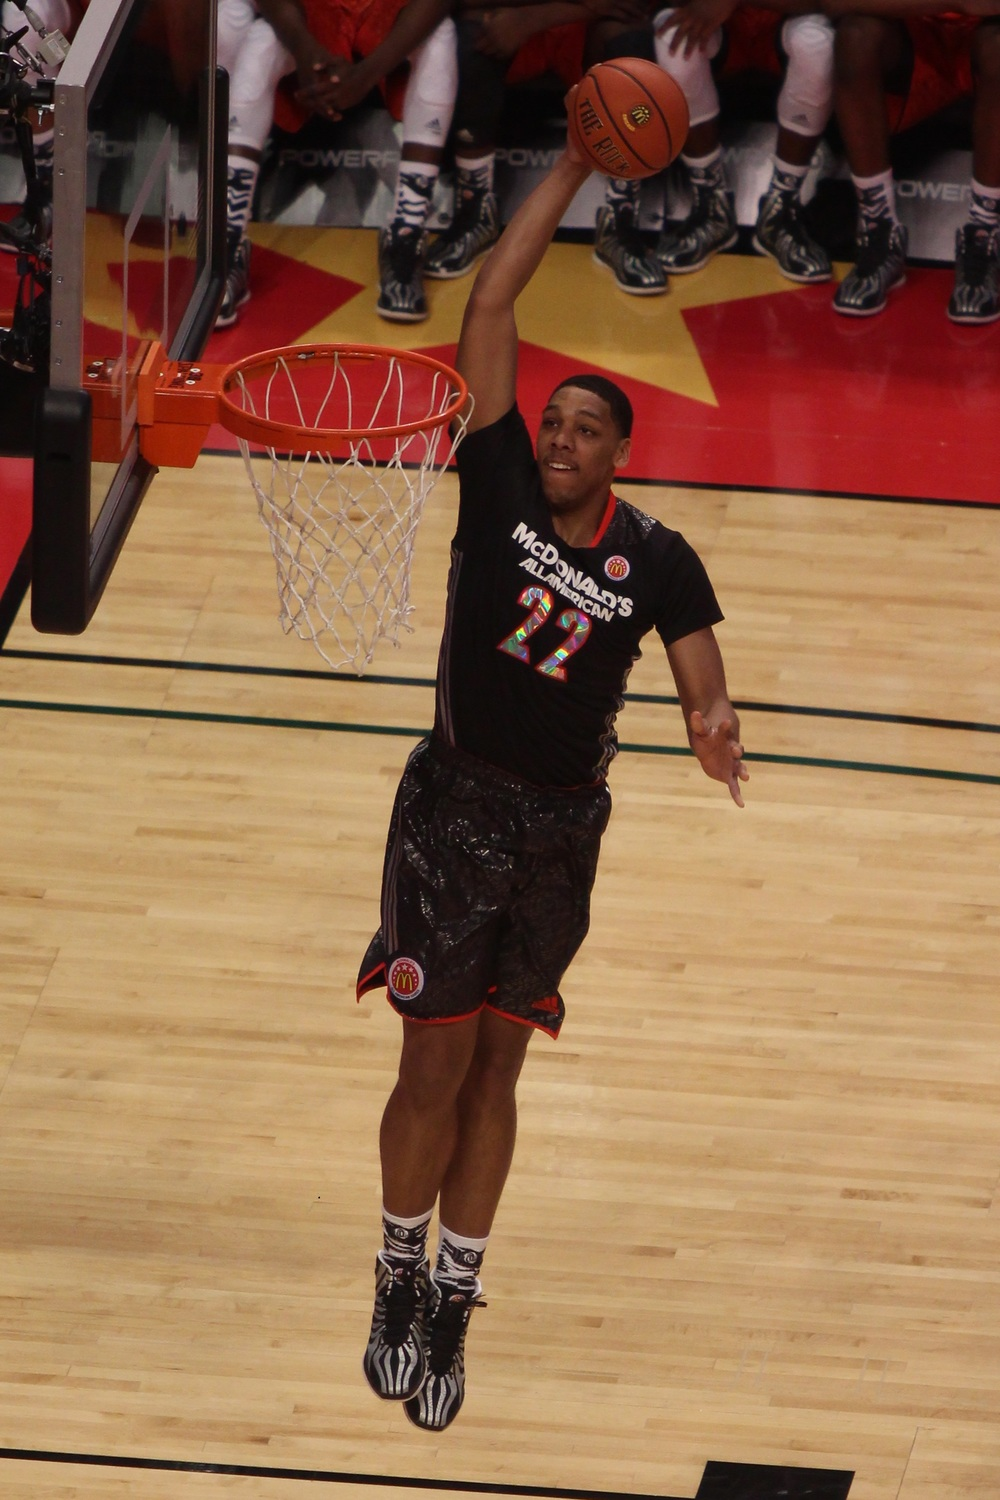 Jahlil Okafor dunking in the 2014 McDonald's All-American Game